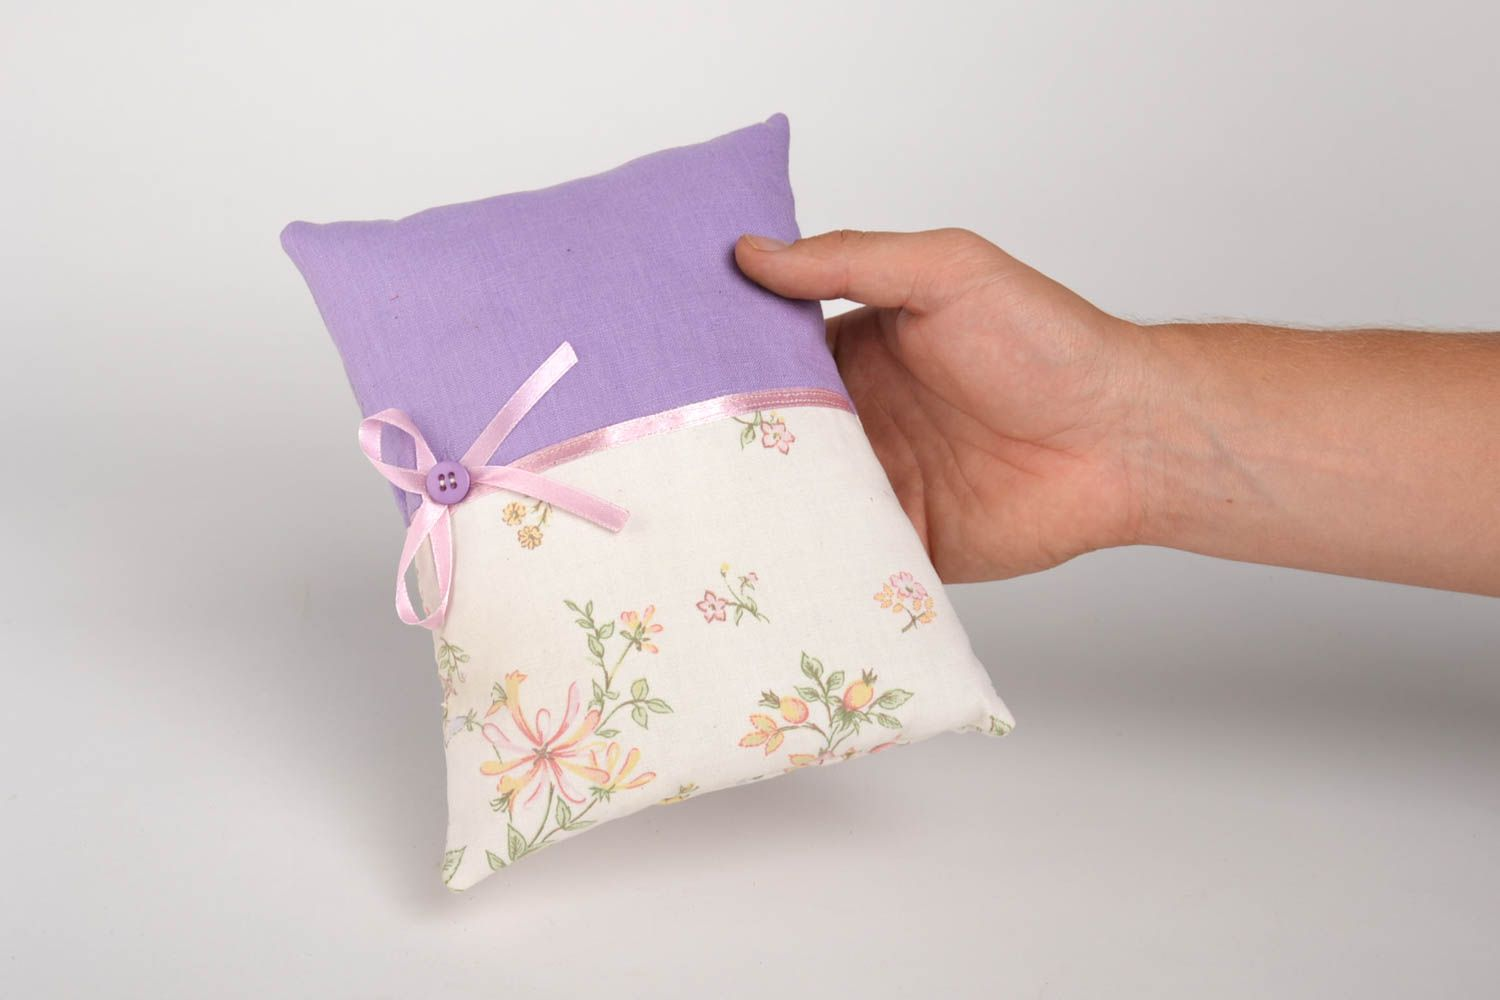 Homemade scented sachet therapeutic pillows aroma therapy home decorations photo 5